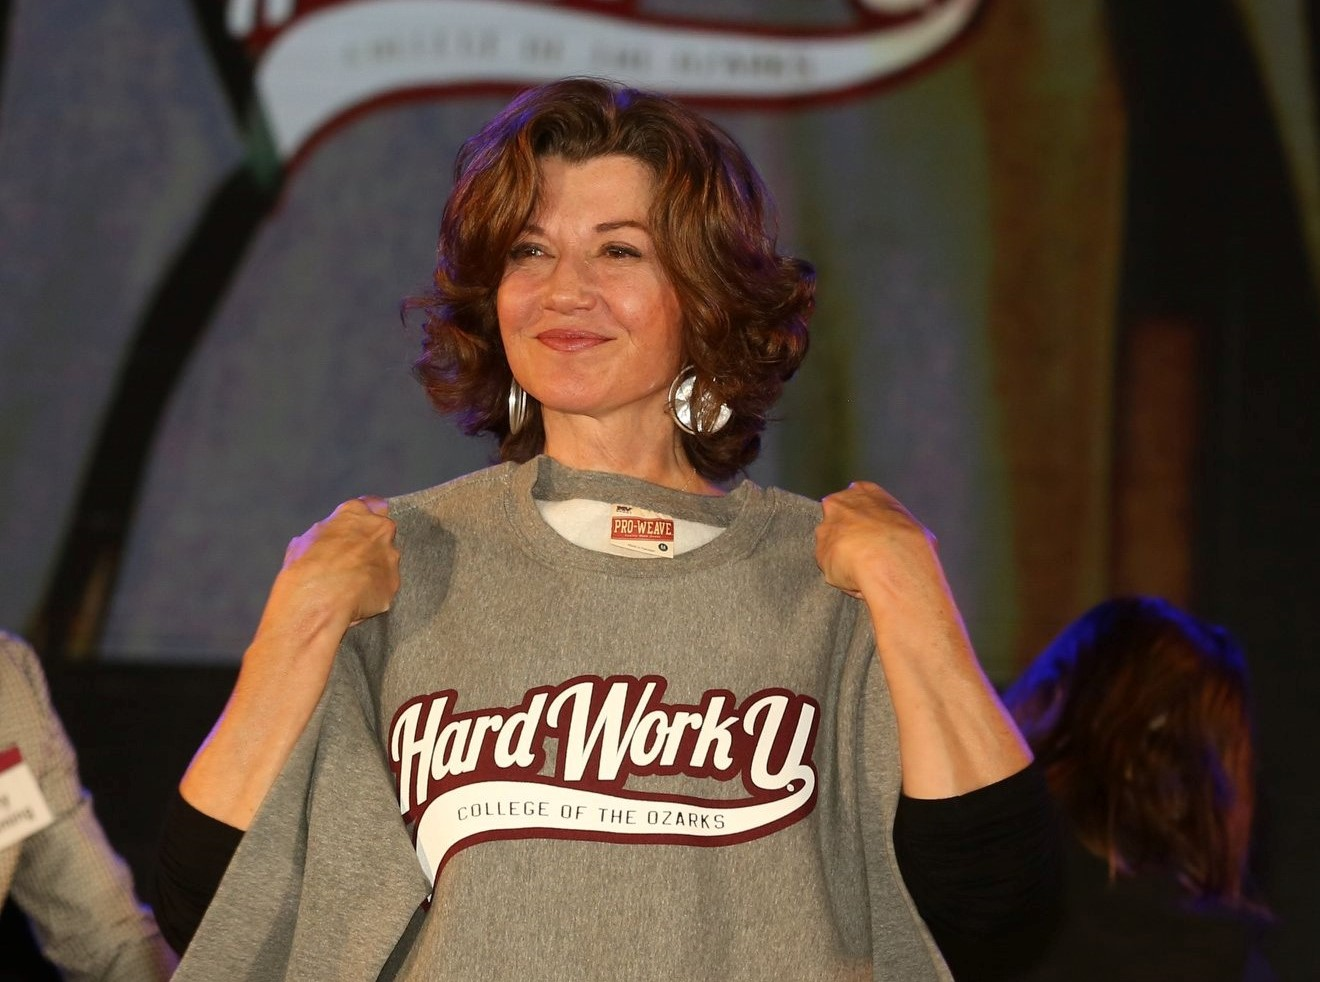 Amy Grant holding up Hard Work U sweatshirt during a visit to College of the Ozarks